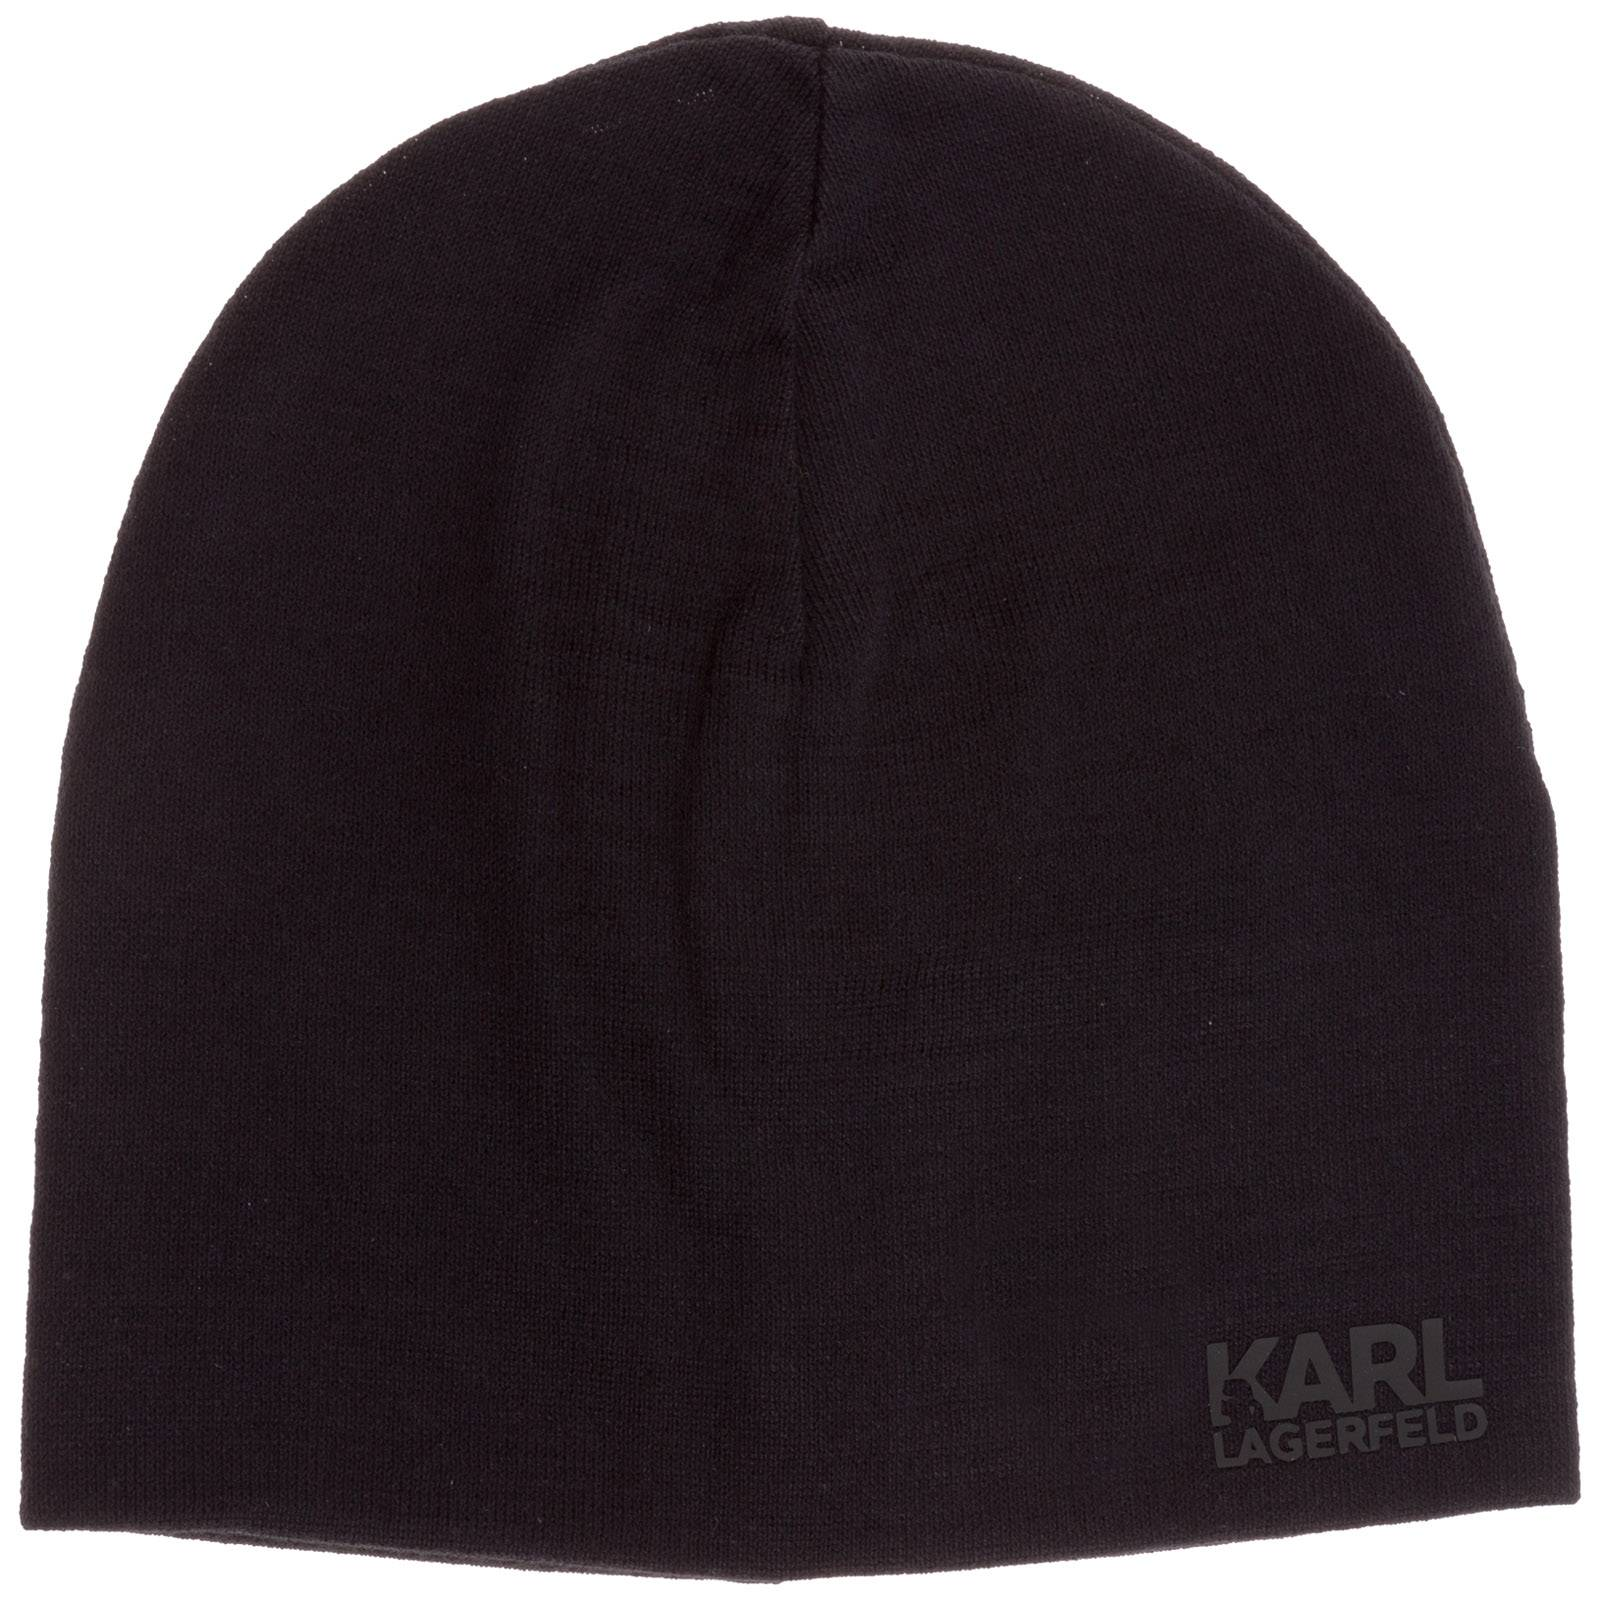 Karl Lagerfeld Men's beanie hat  - Black - Size: Medium